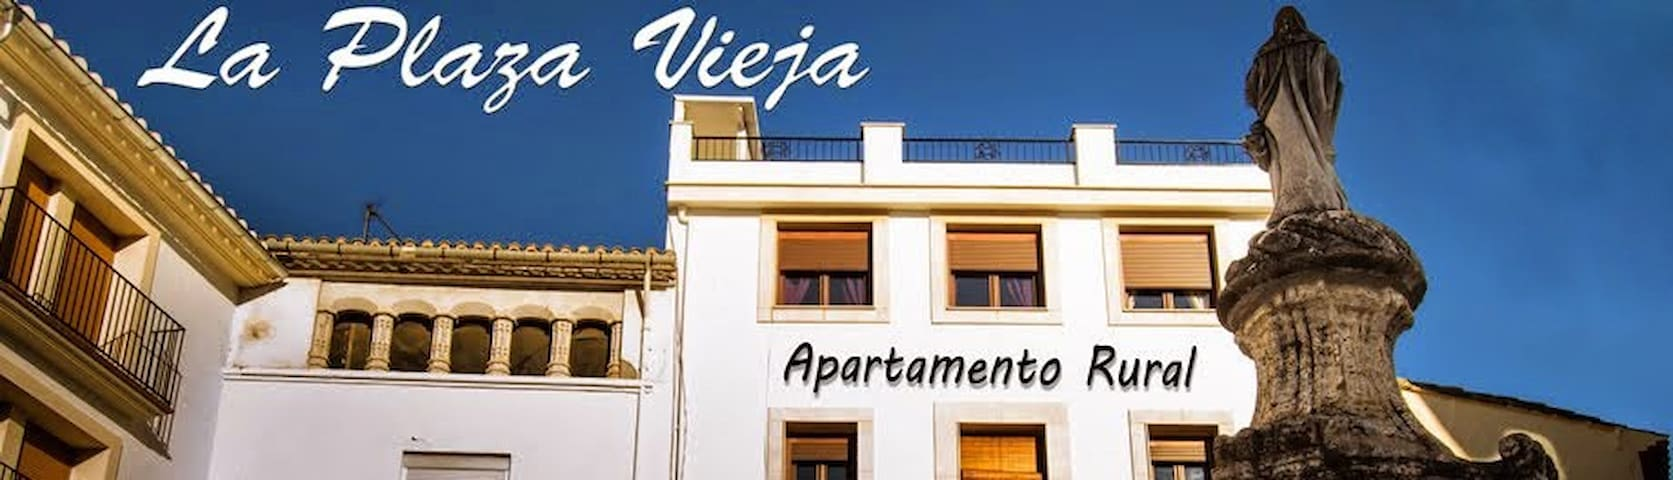 Apartamento rural La Plaza Vieja - Viver - Appartement